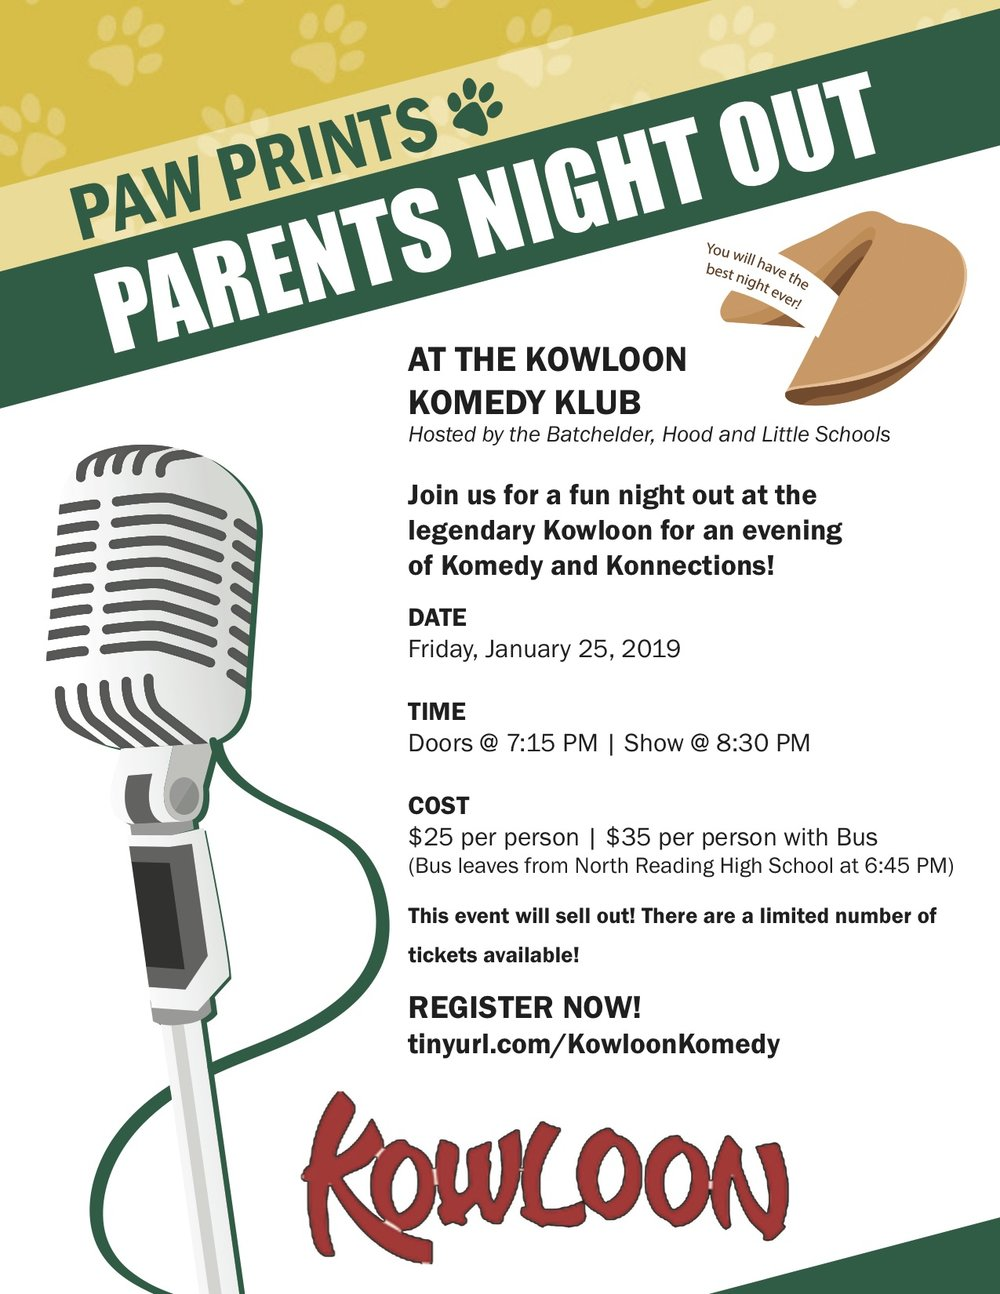 Parents Night Out - REGISTER NOW! tinyurl.com/KowloonKomedy